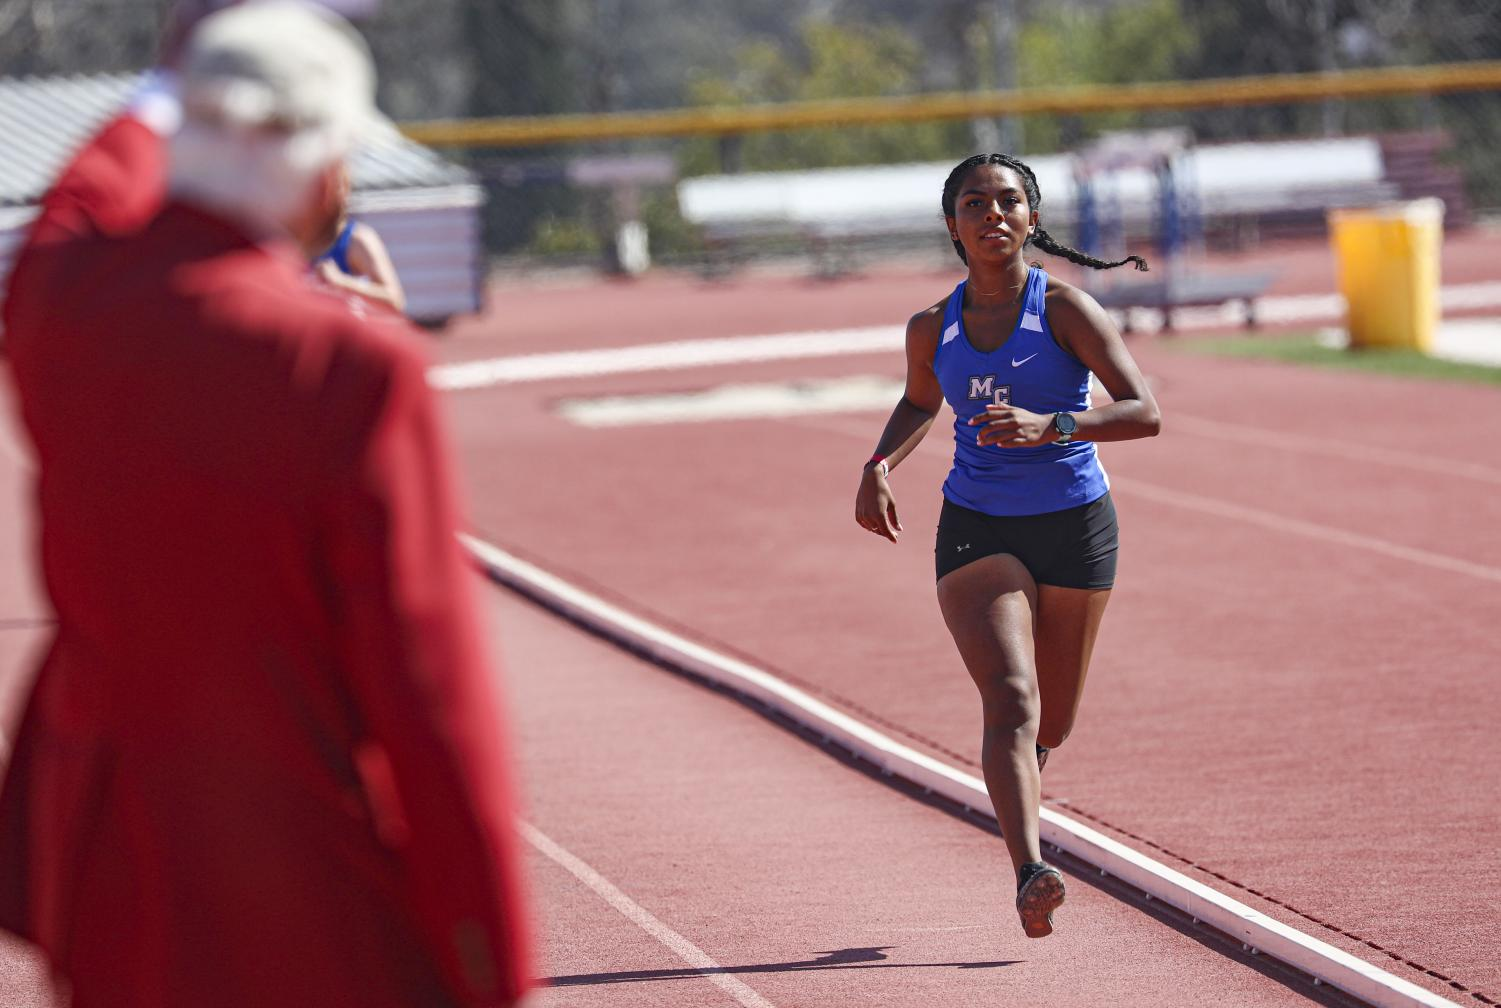 Elizabeth Sanchez completes a lap during the women's 3000 meter run at the first WSC meet of the season on Friday, April 16, 2021 in Moorpark, CA. Sanchez completed the run in 12:19:68, over a minute faster than her competitor.